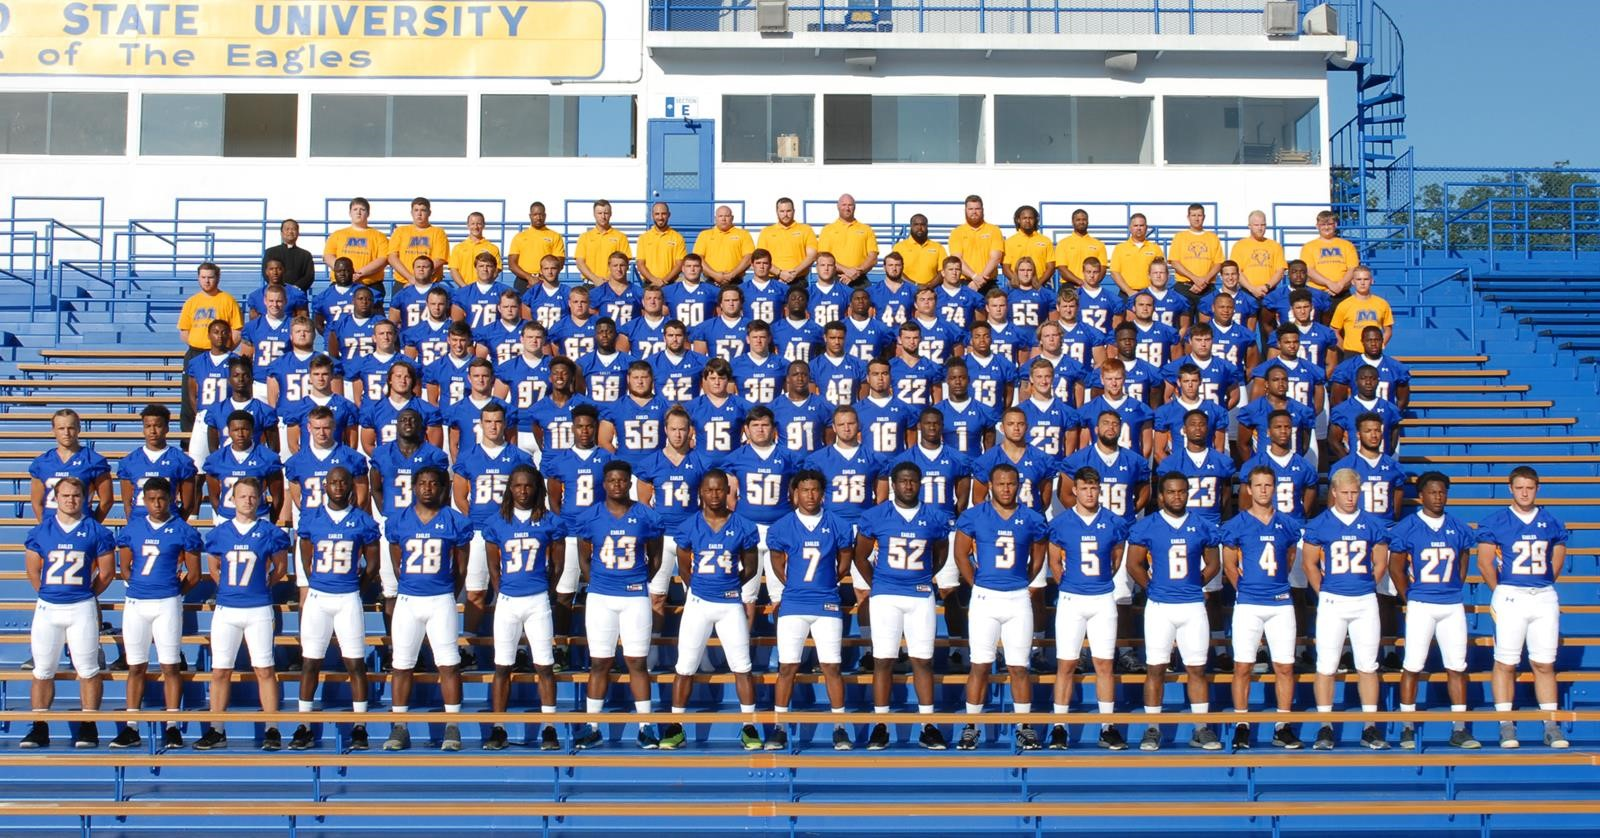 2016 0 roster morehead state university athletics